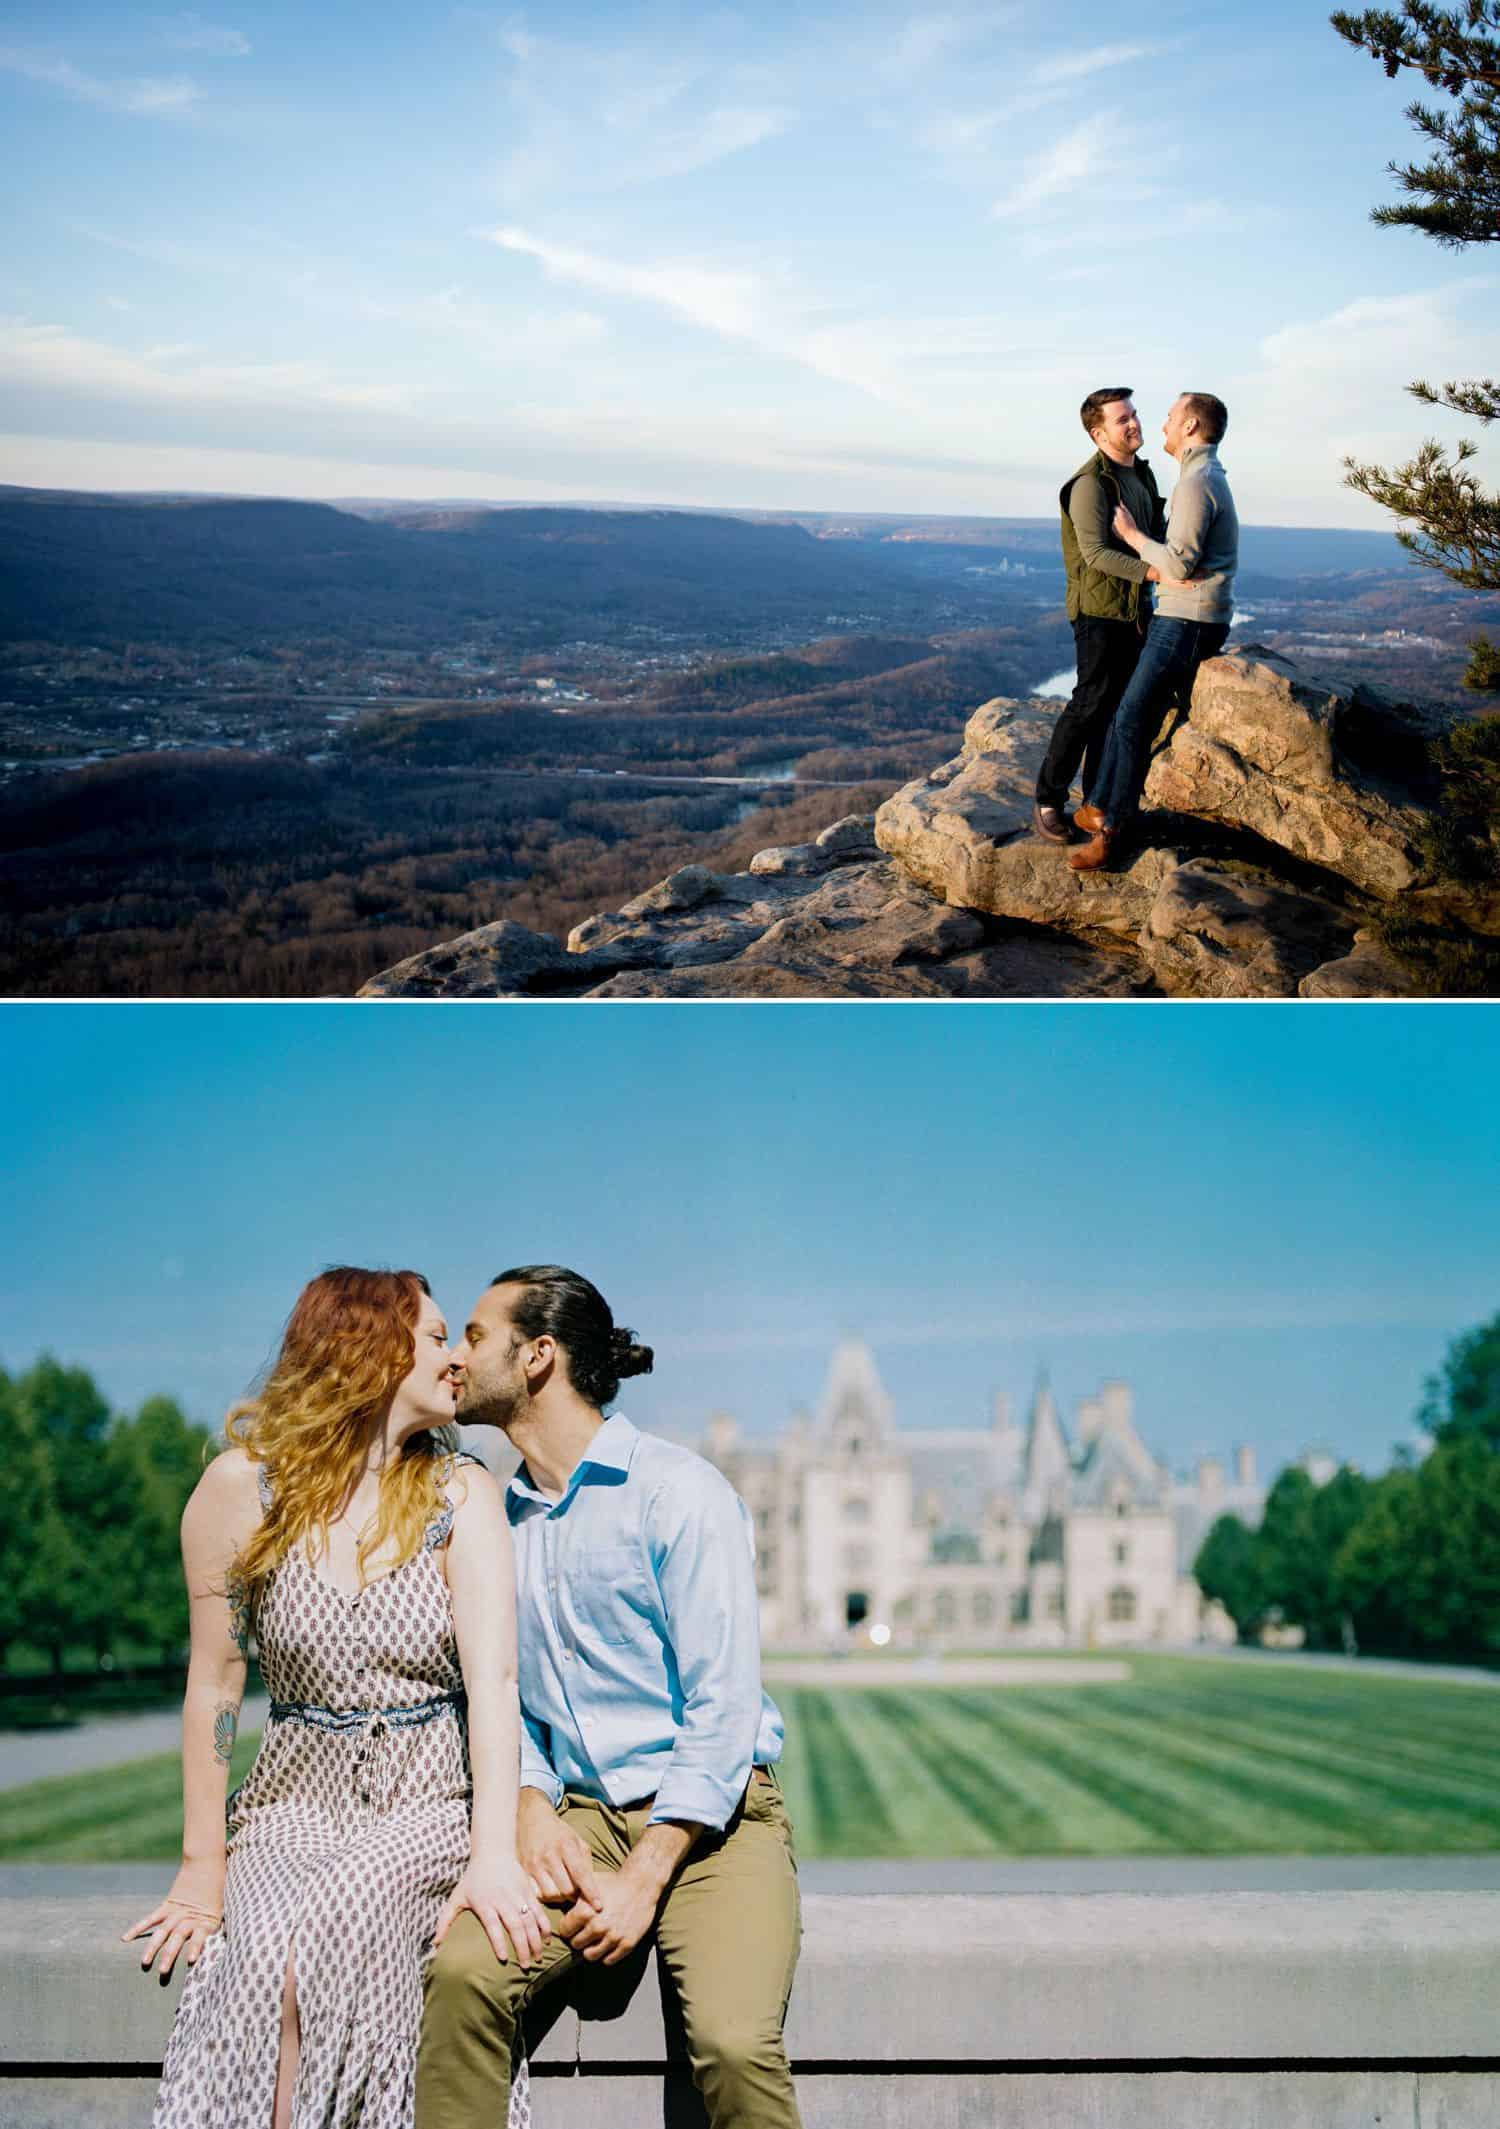 Pose your engaged couple so you can also capture the gorgeous scenery behind them